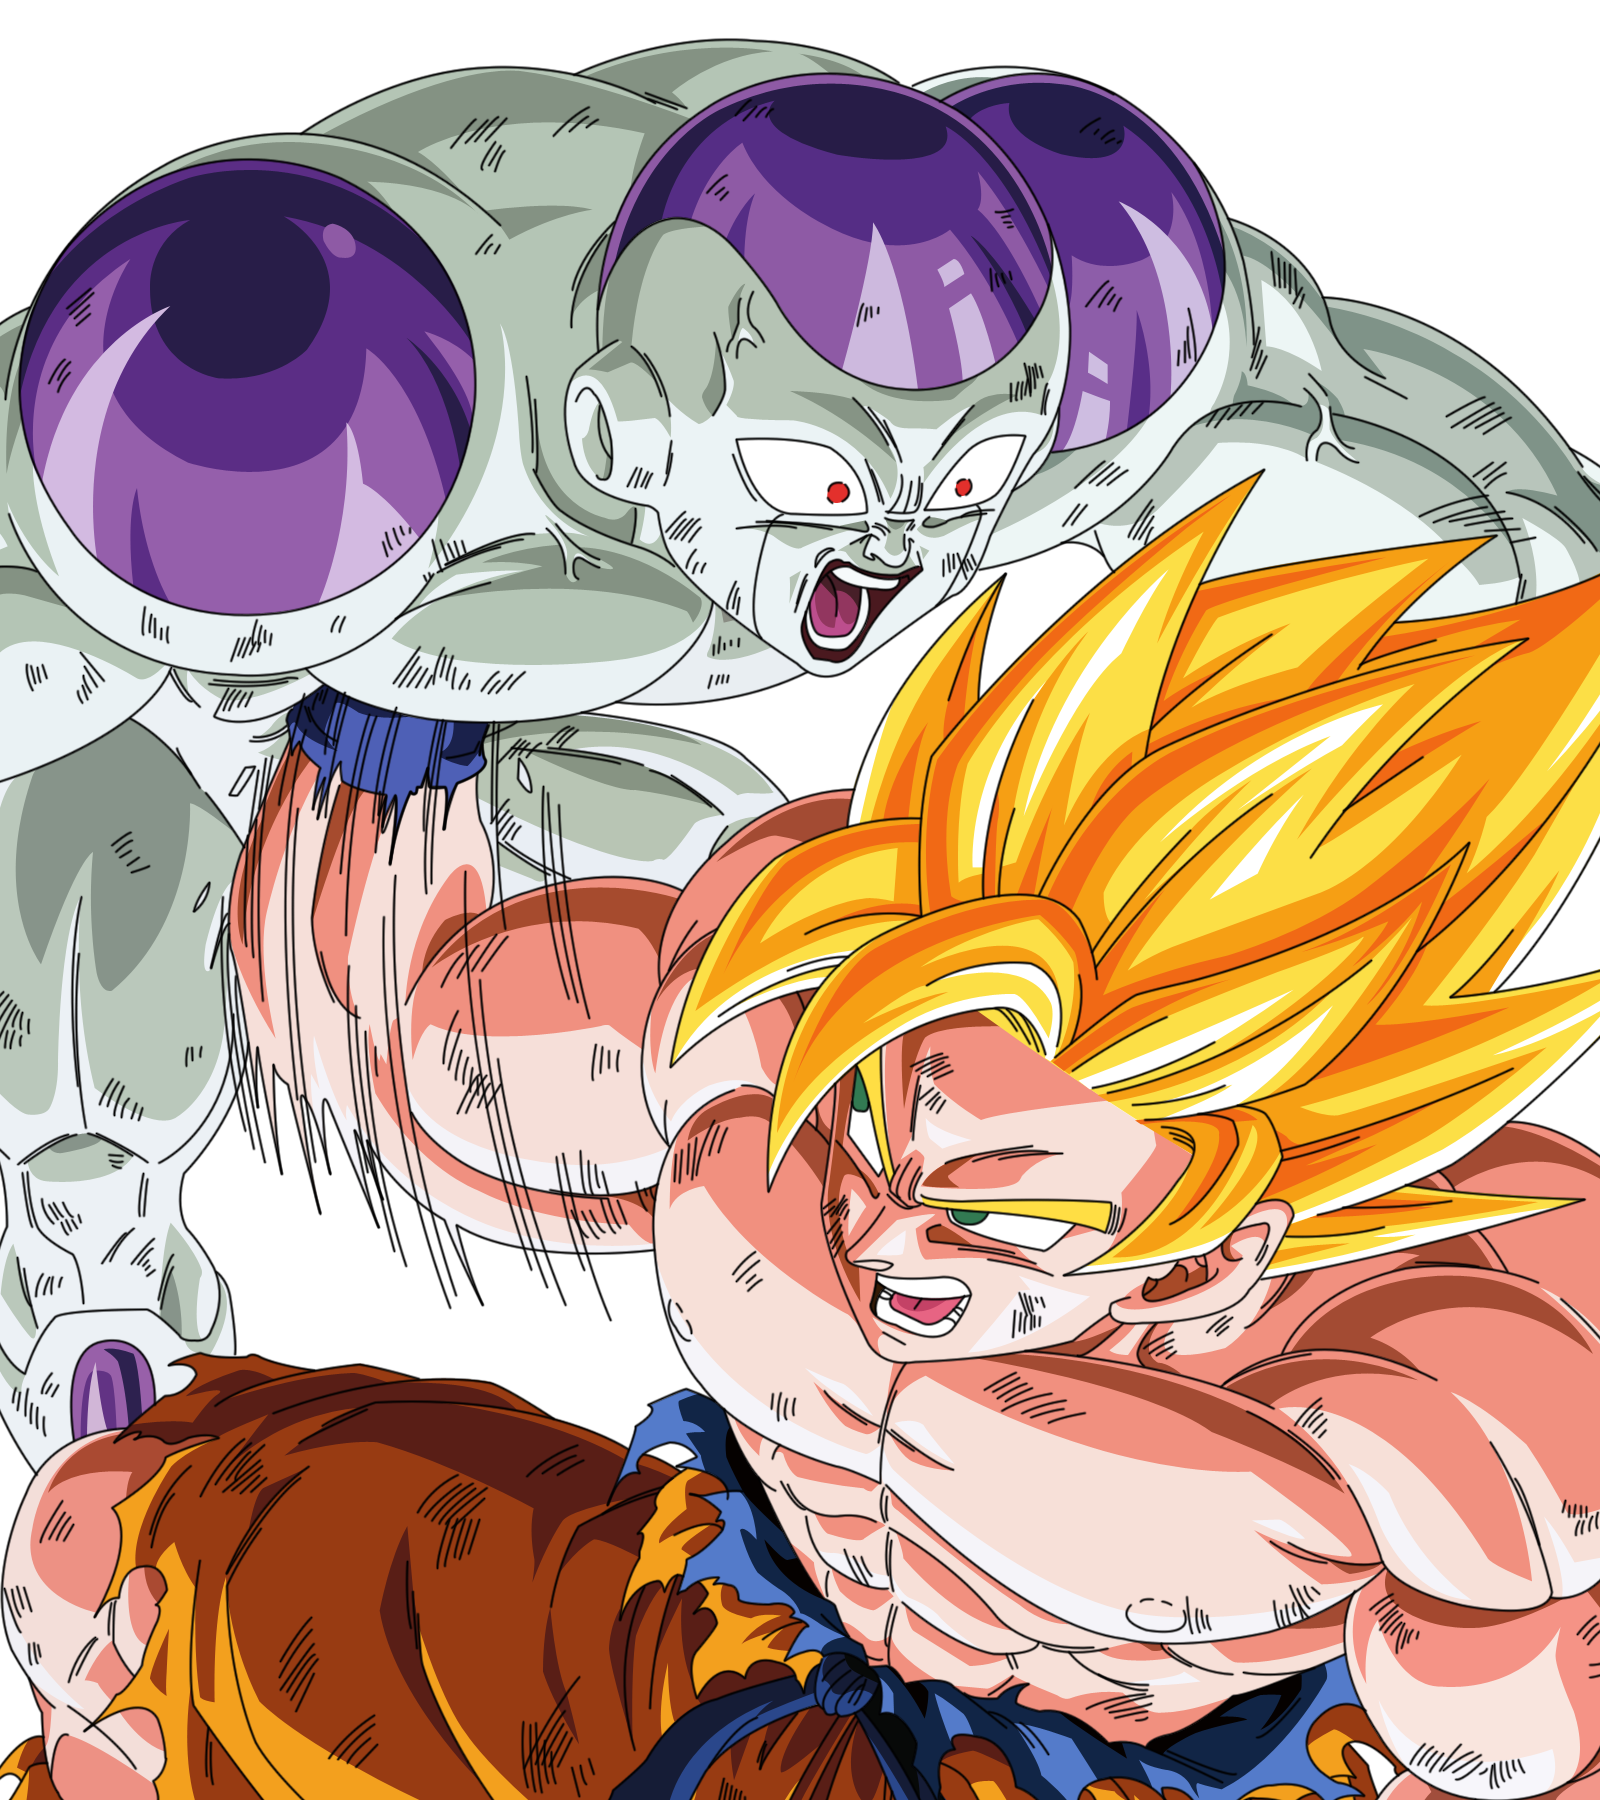 Goku_vs_Frieza_by_zman786.png